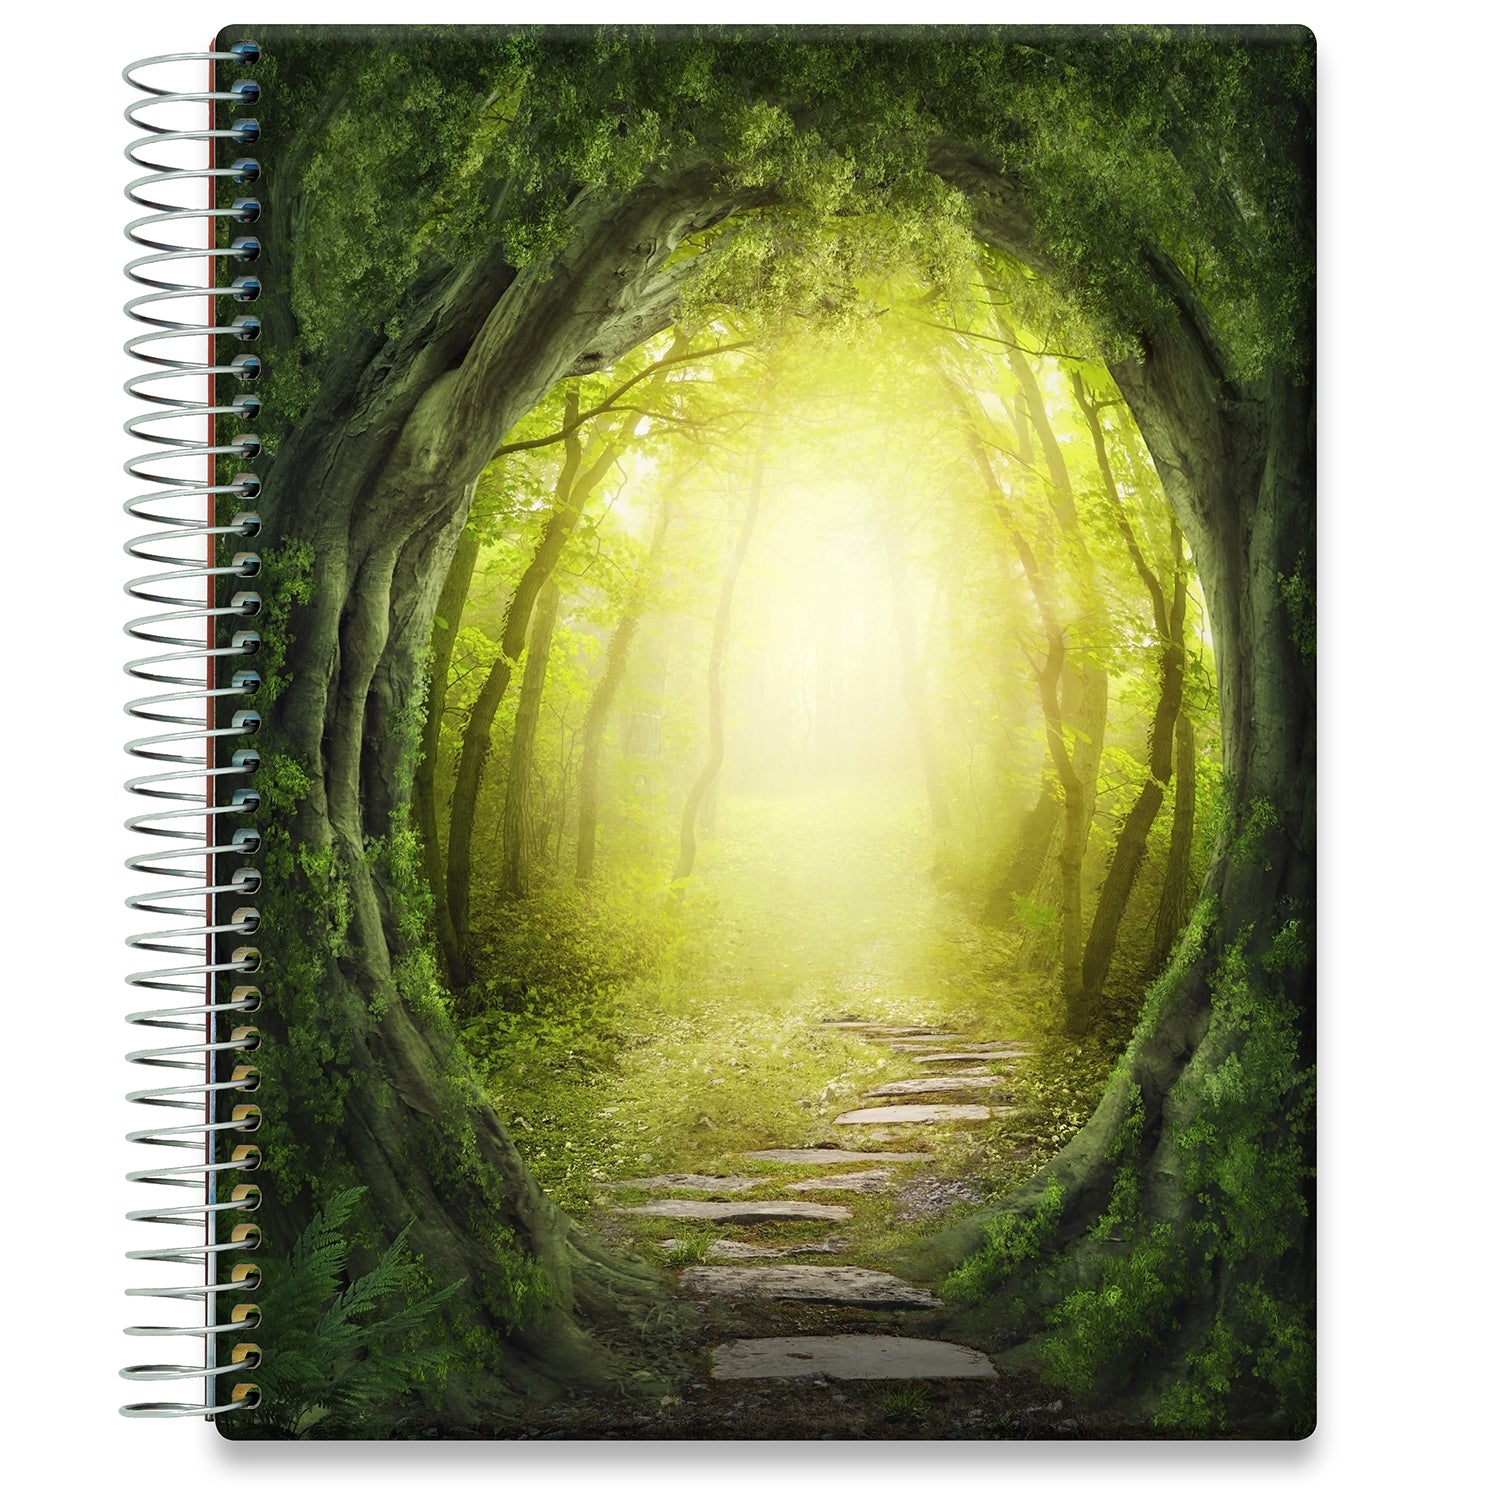 Planner 2021-2022 • April 2021 to June 2022 Academic Year • 8.5x11 Hardcover • Magic Forest